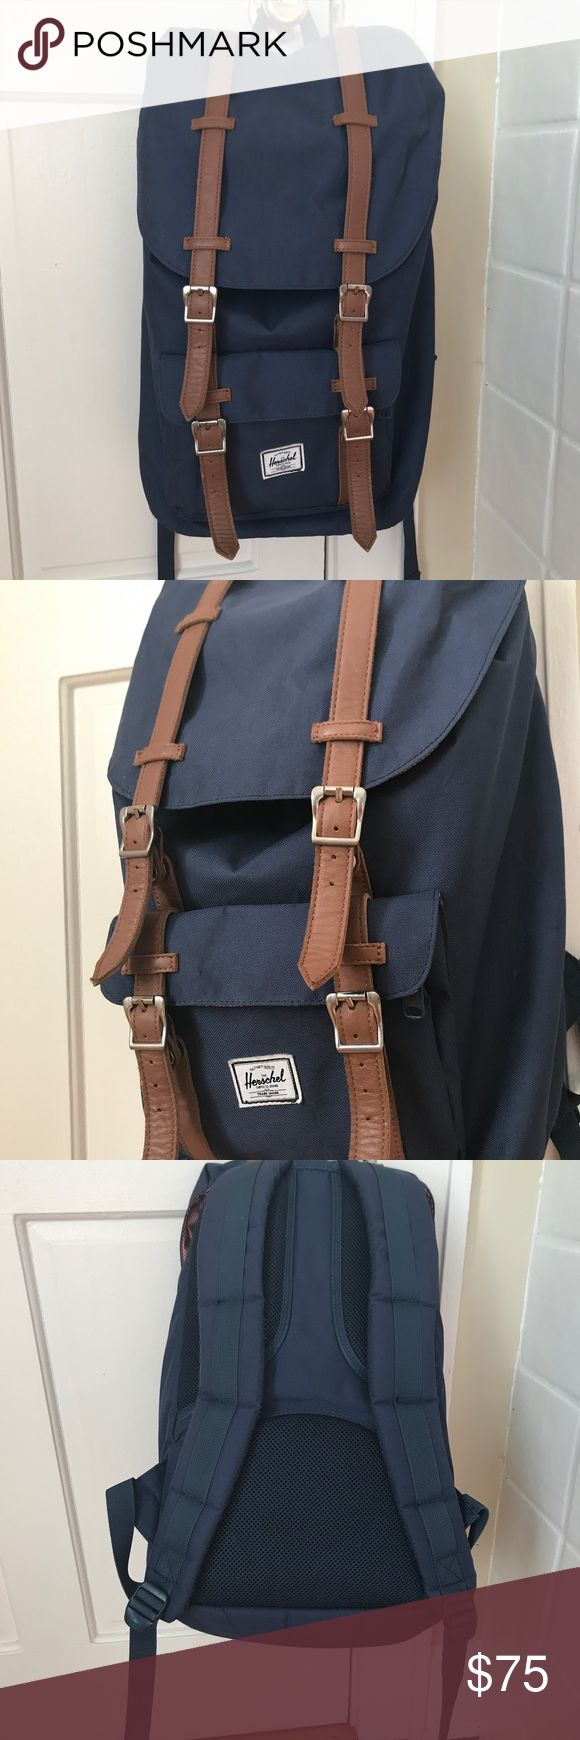 """Navy Herschel Backpack Large, in great condition! Can hold up to a 15"""" MacBook   Has computer sleeve. Great for school, traveling and everyday use! Normally $120 Herschel Supply Company Bags Backpacks"""